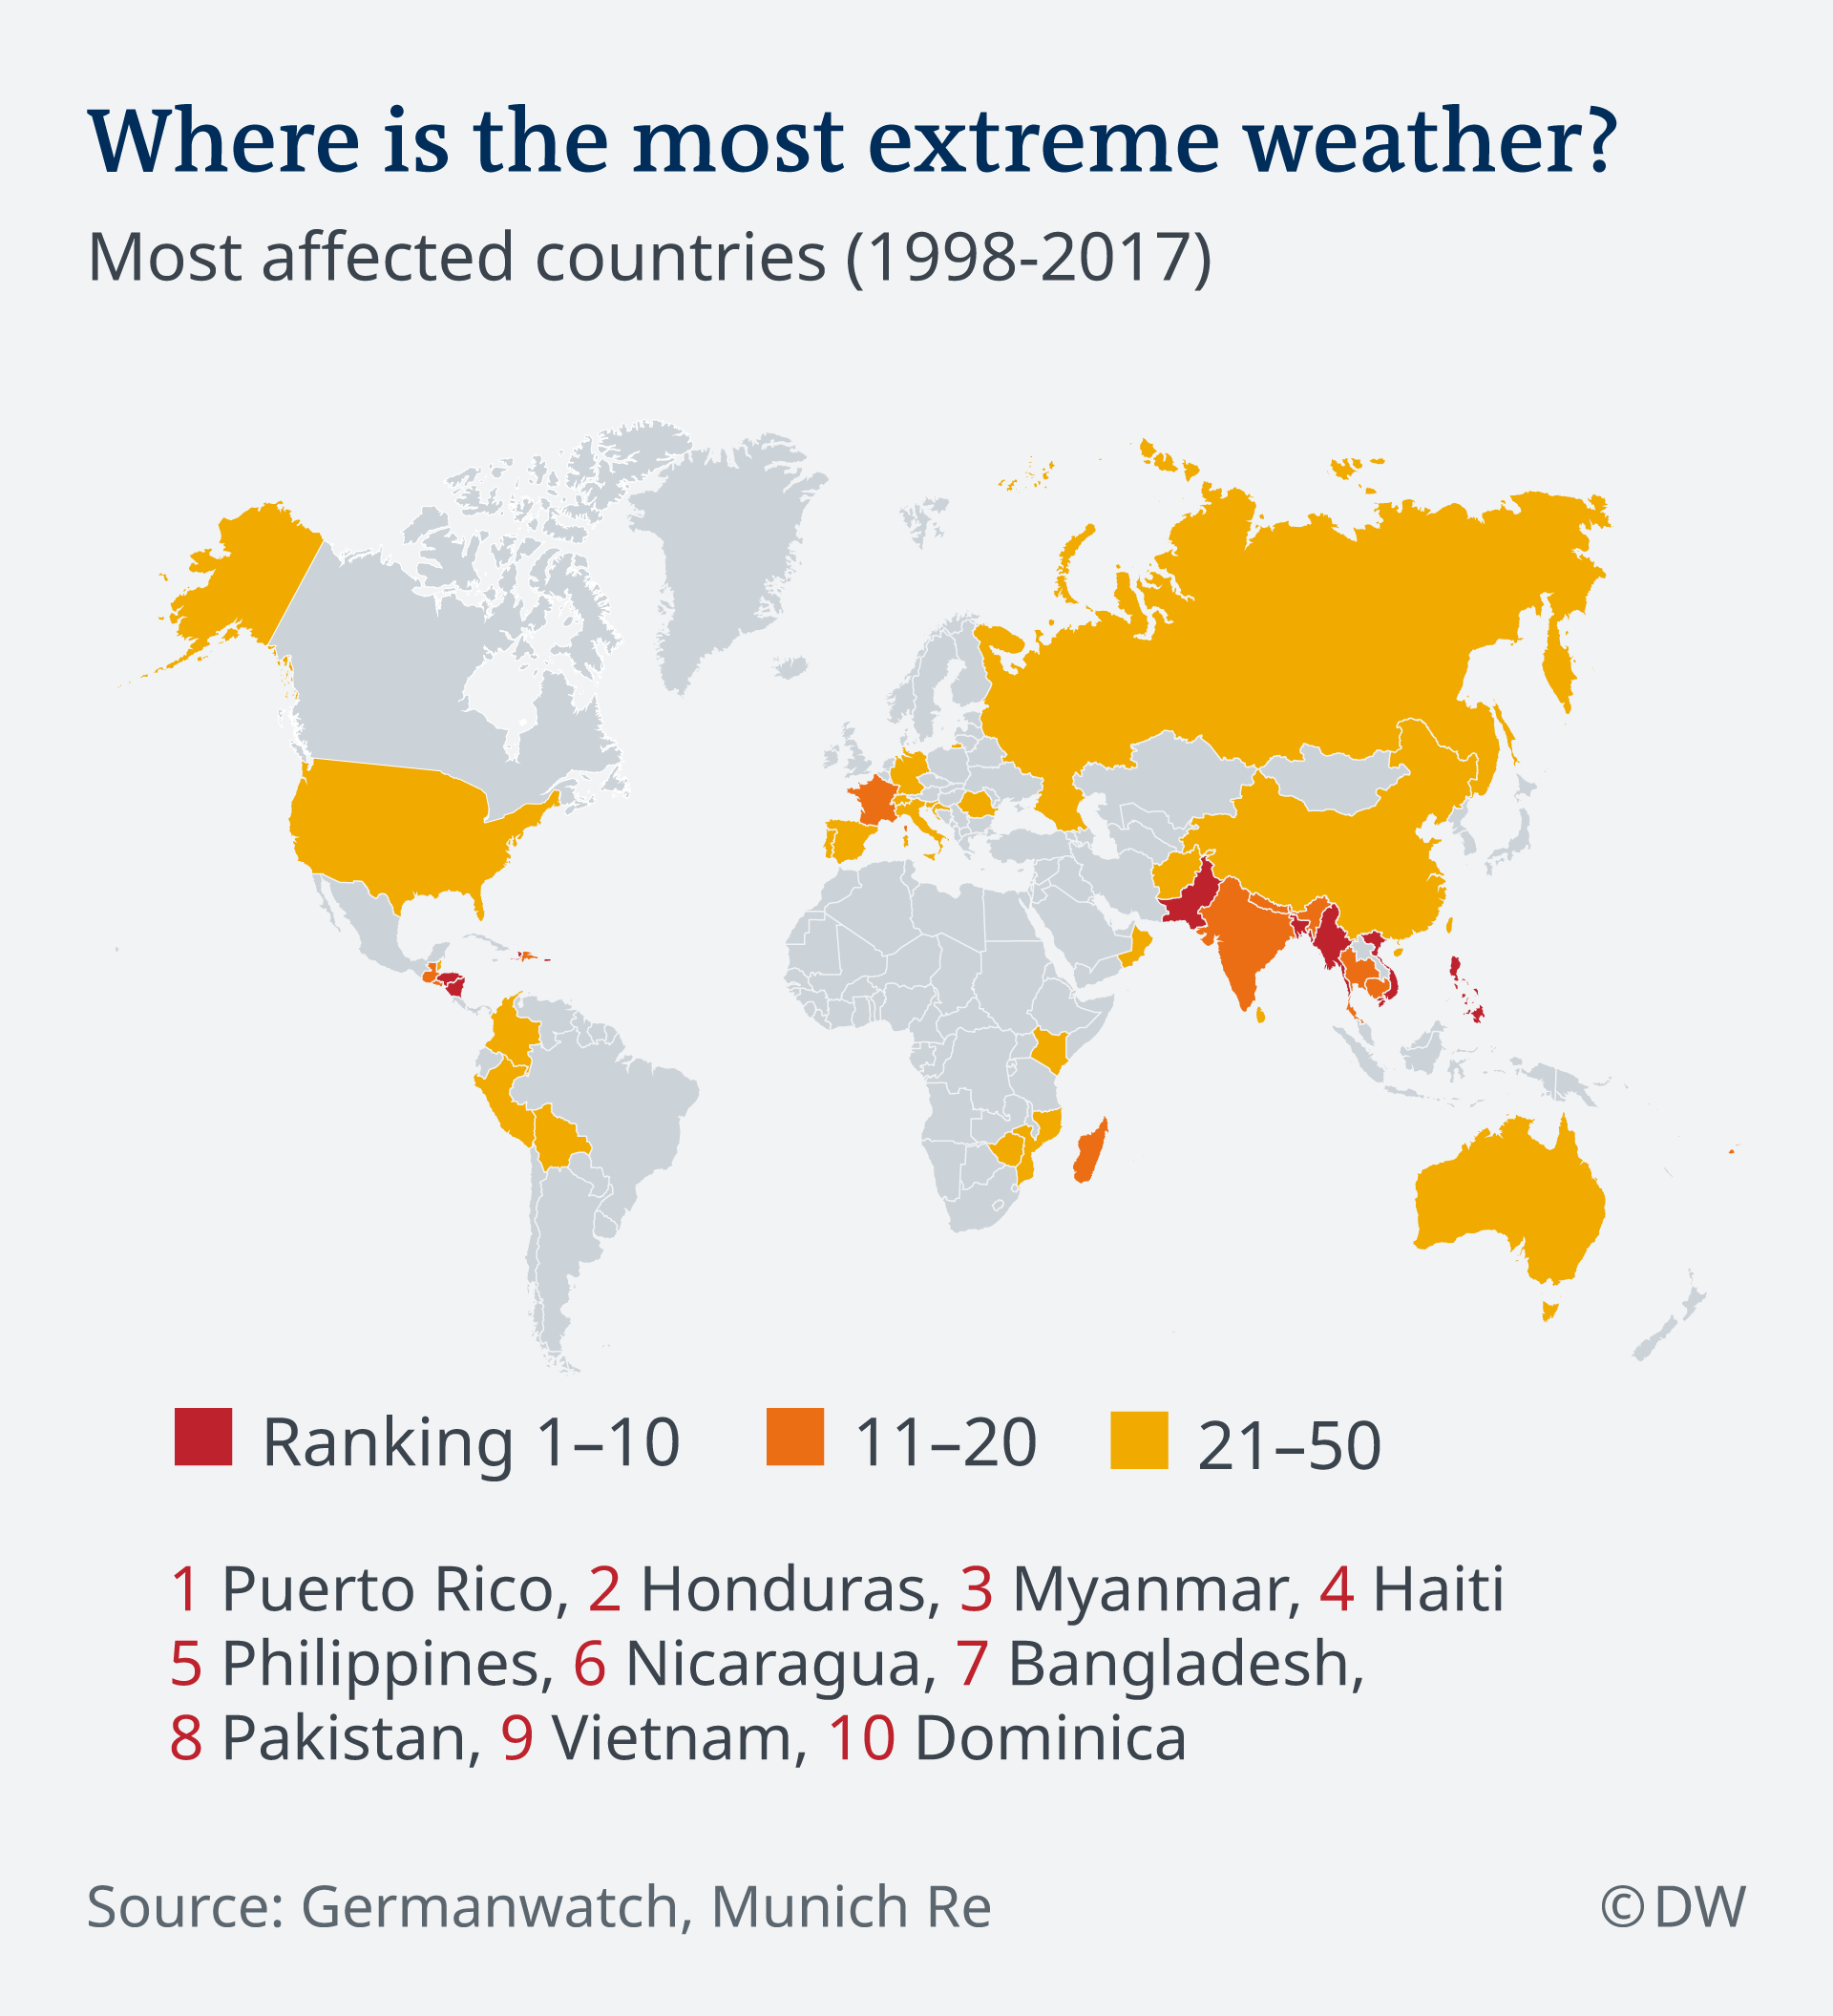 An infographic explaining which countries were most affected by extreme weather between 1998 and 2017